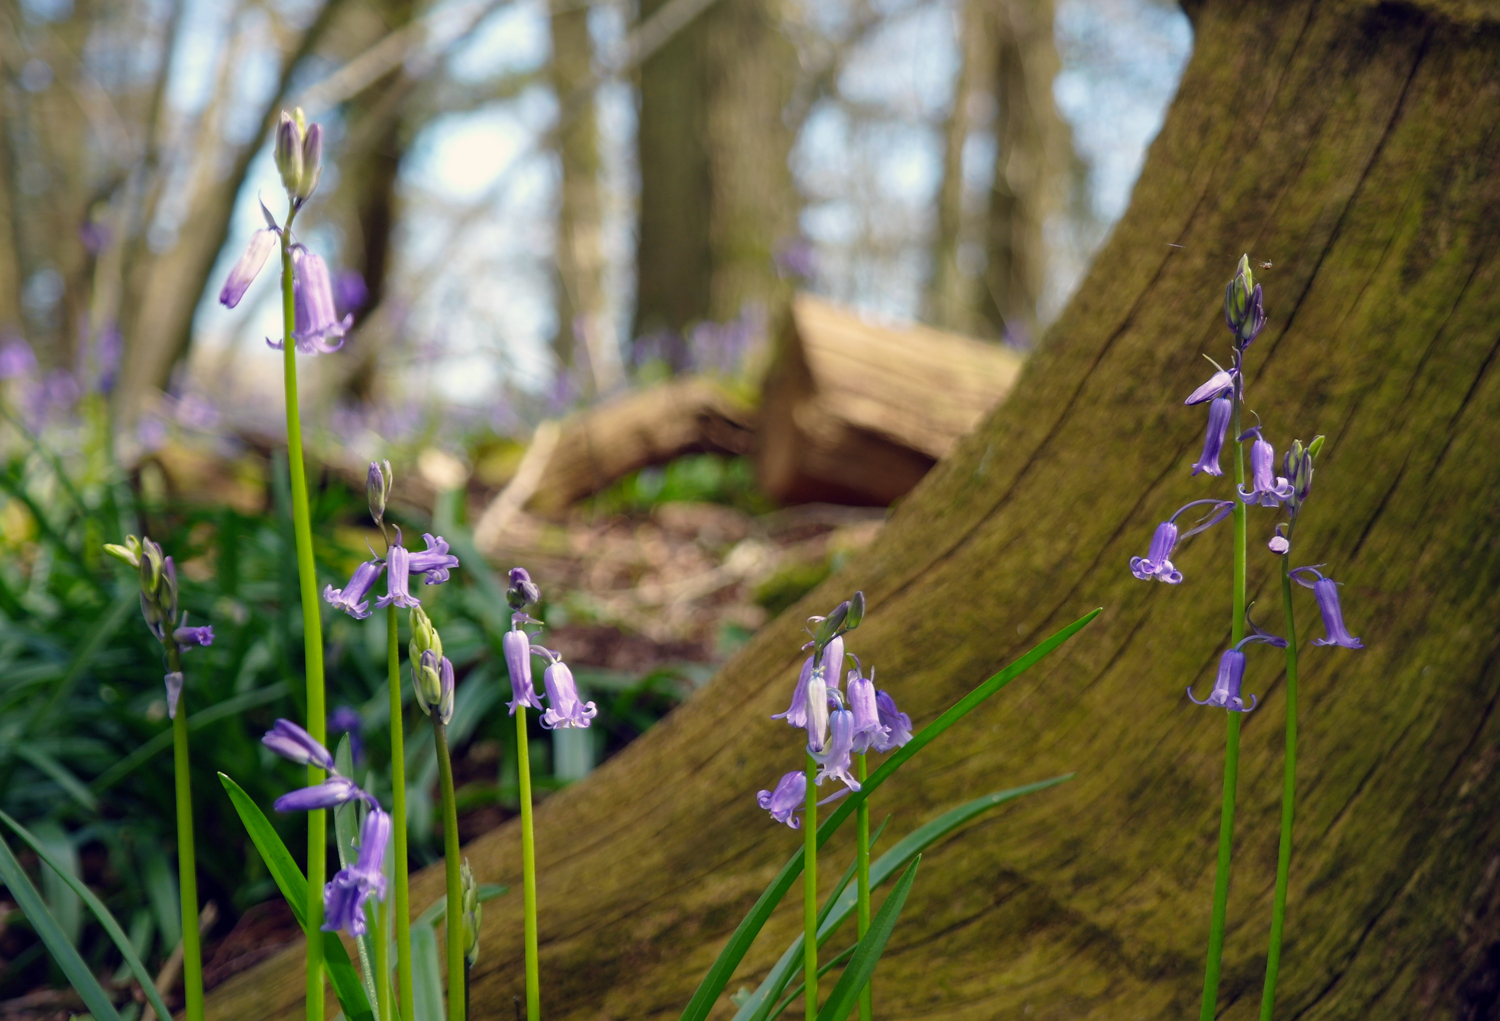 English bluebells in a bluebell wood on the Kingston Lacy estate, Dorset, England.